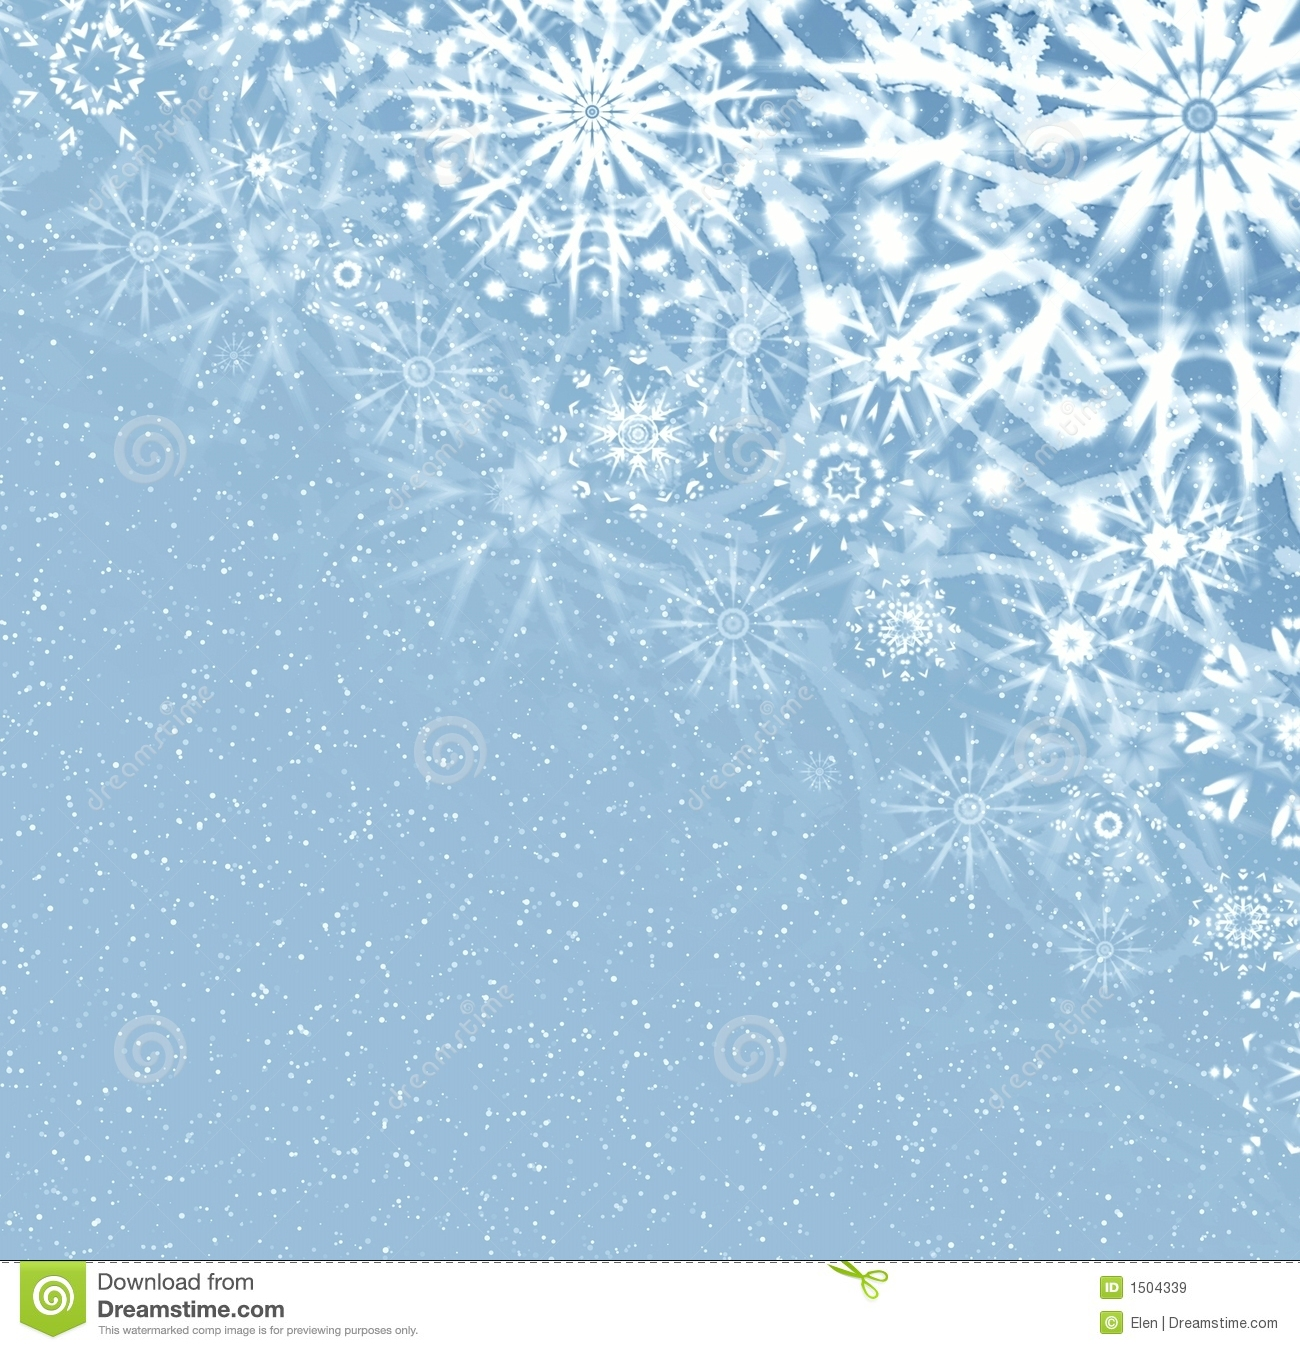 White merry christmas snowflake background graphics free